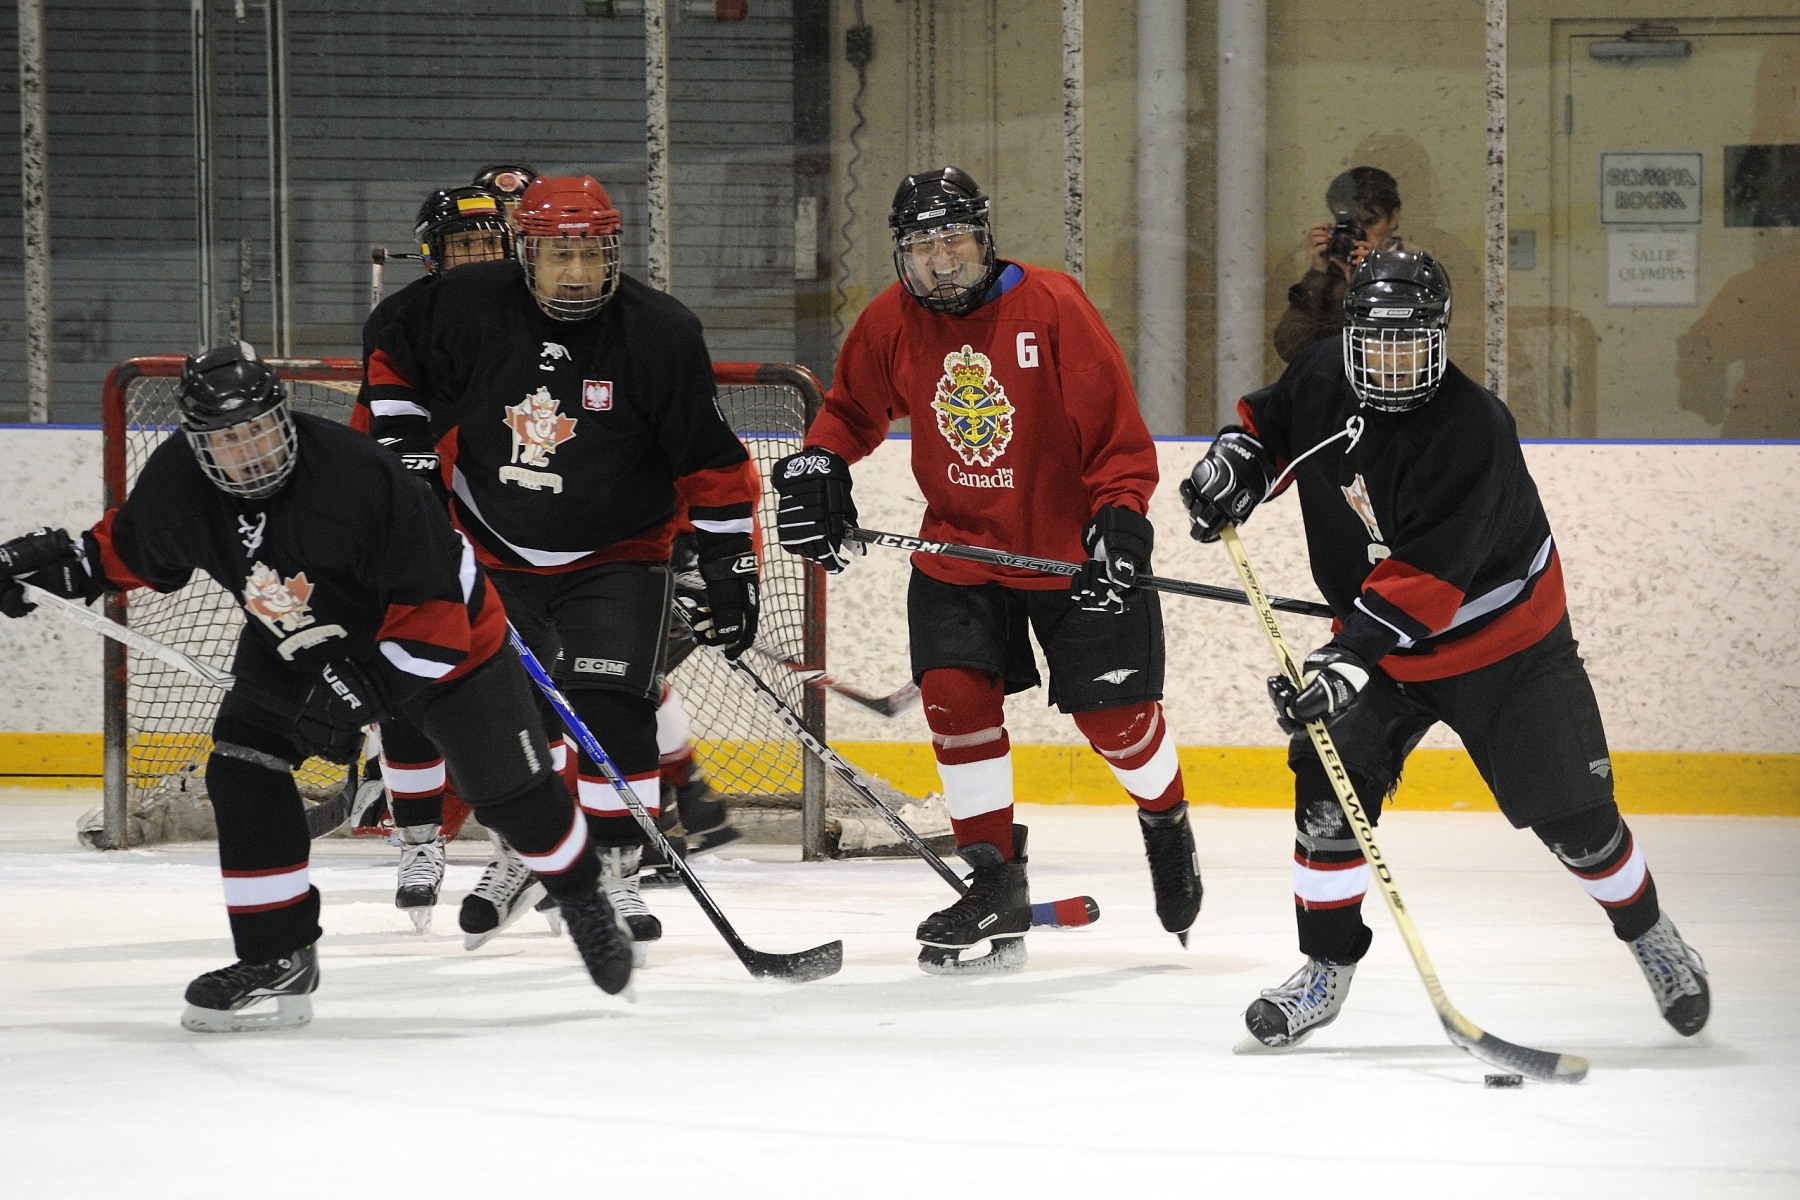 The game brought together General Officers and Flag Officers of the Canadian Forces as well as foreign military attachés of the Ottawa Service Attachés Association in support of the Military Families Fund.